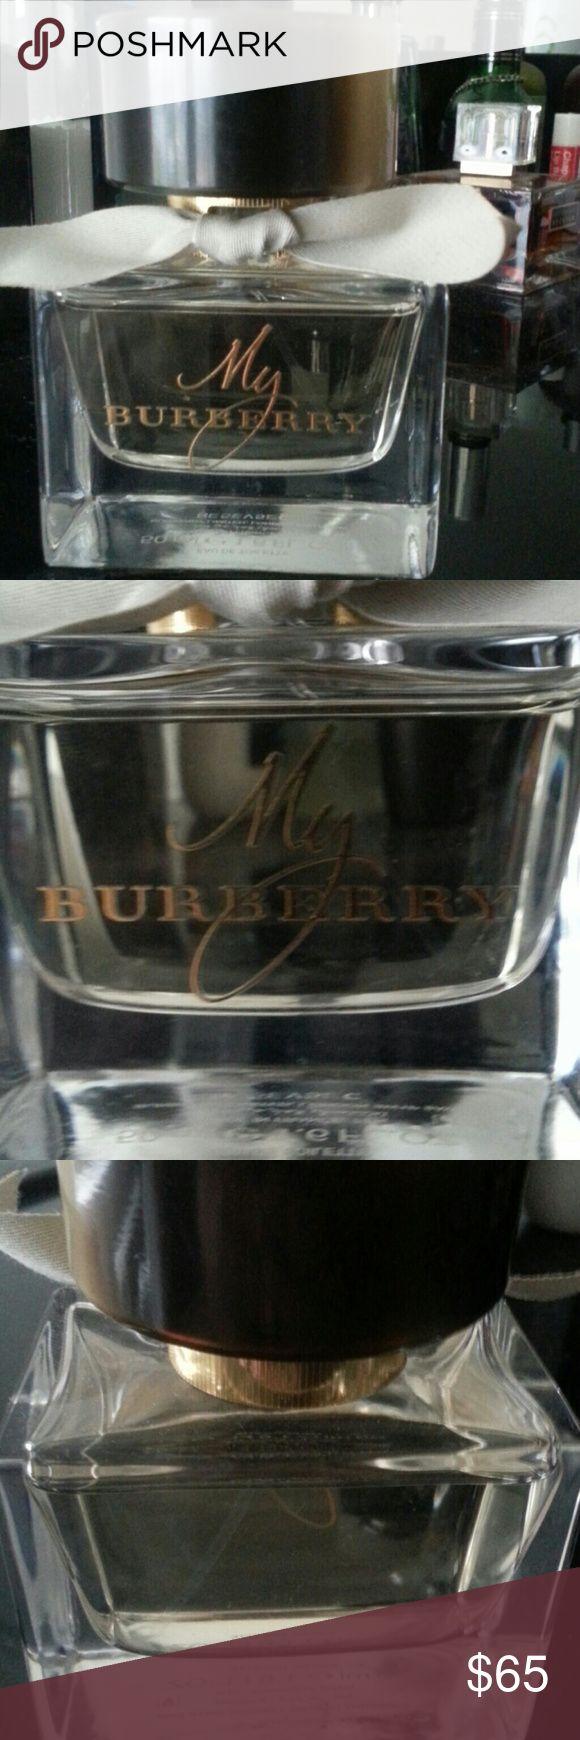 1.6oz My burberry perfume Like new full bottle, hardly used. Eau de toilette perfume by Burberry. Beautiful fragrance. Burberry Other